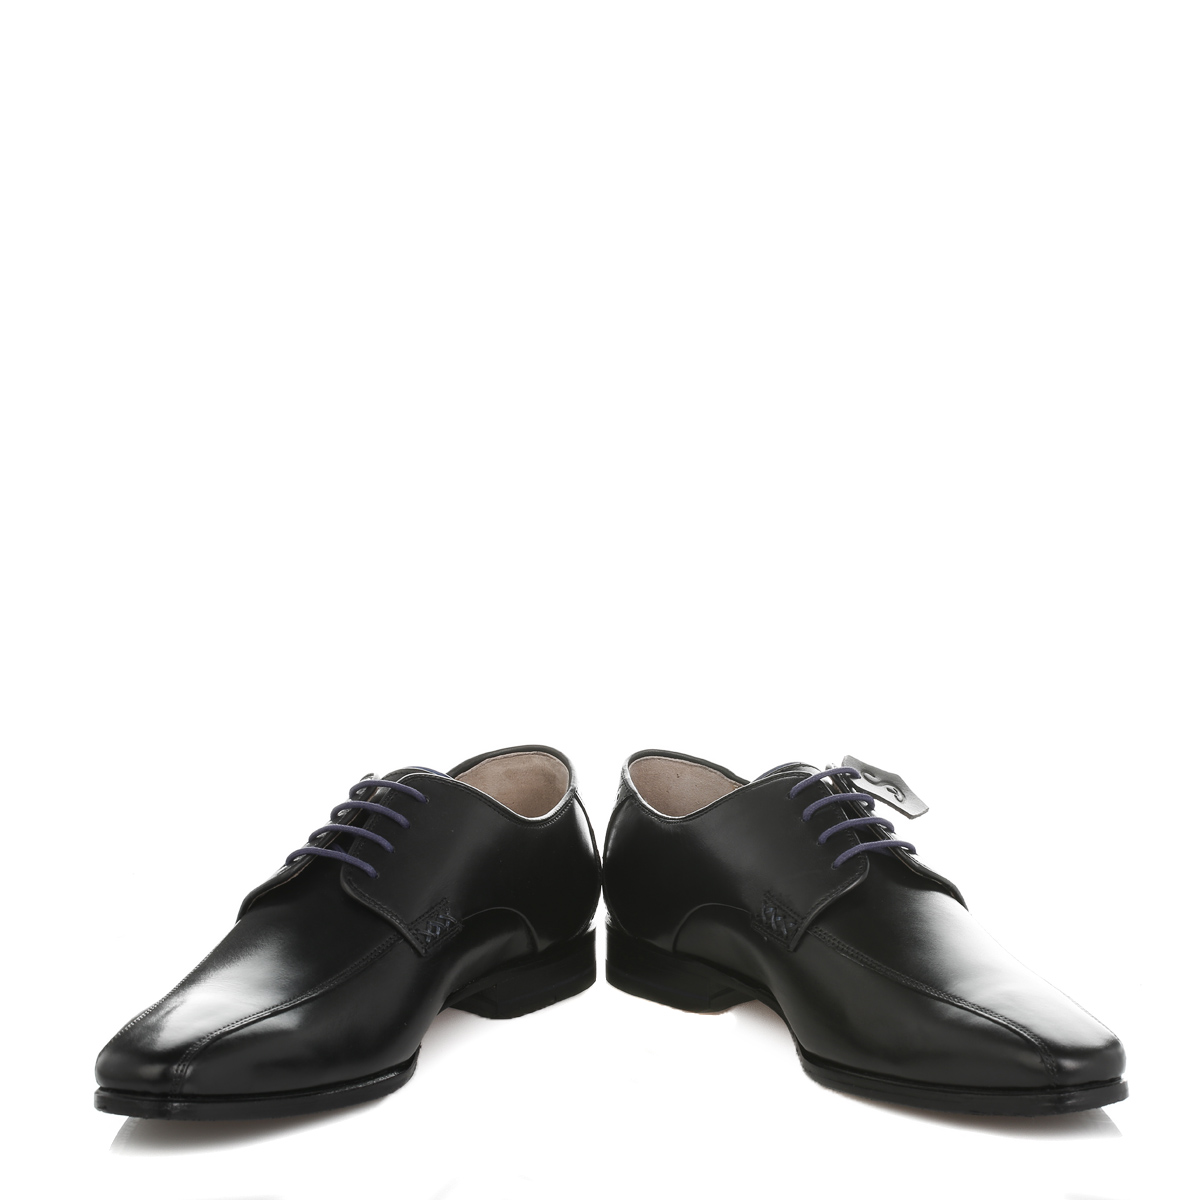 oliver sweeney mens formal shoes lace up smarts leather